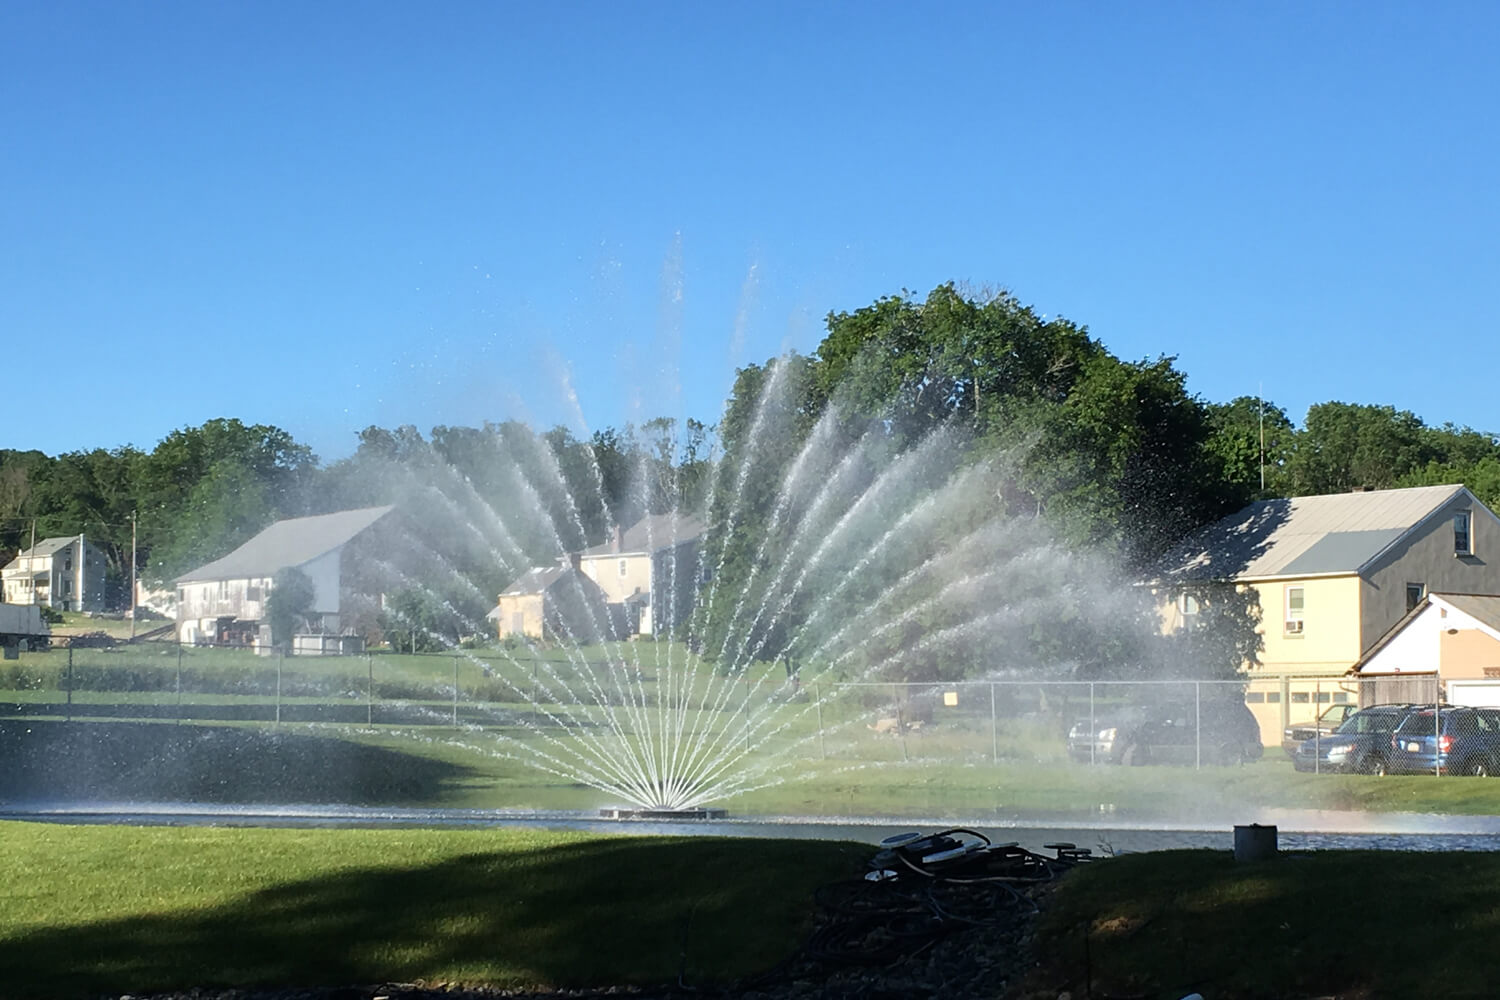 One of Otterbine's Aries Aerating Fountains in a residential area